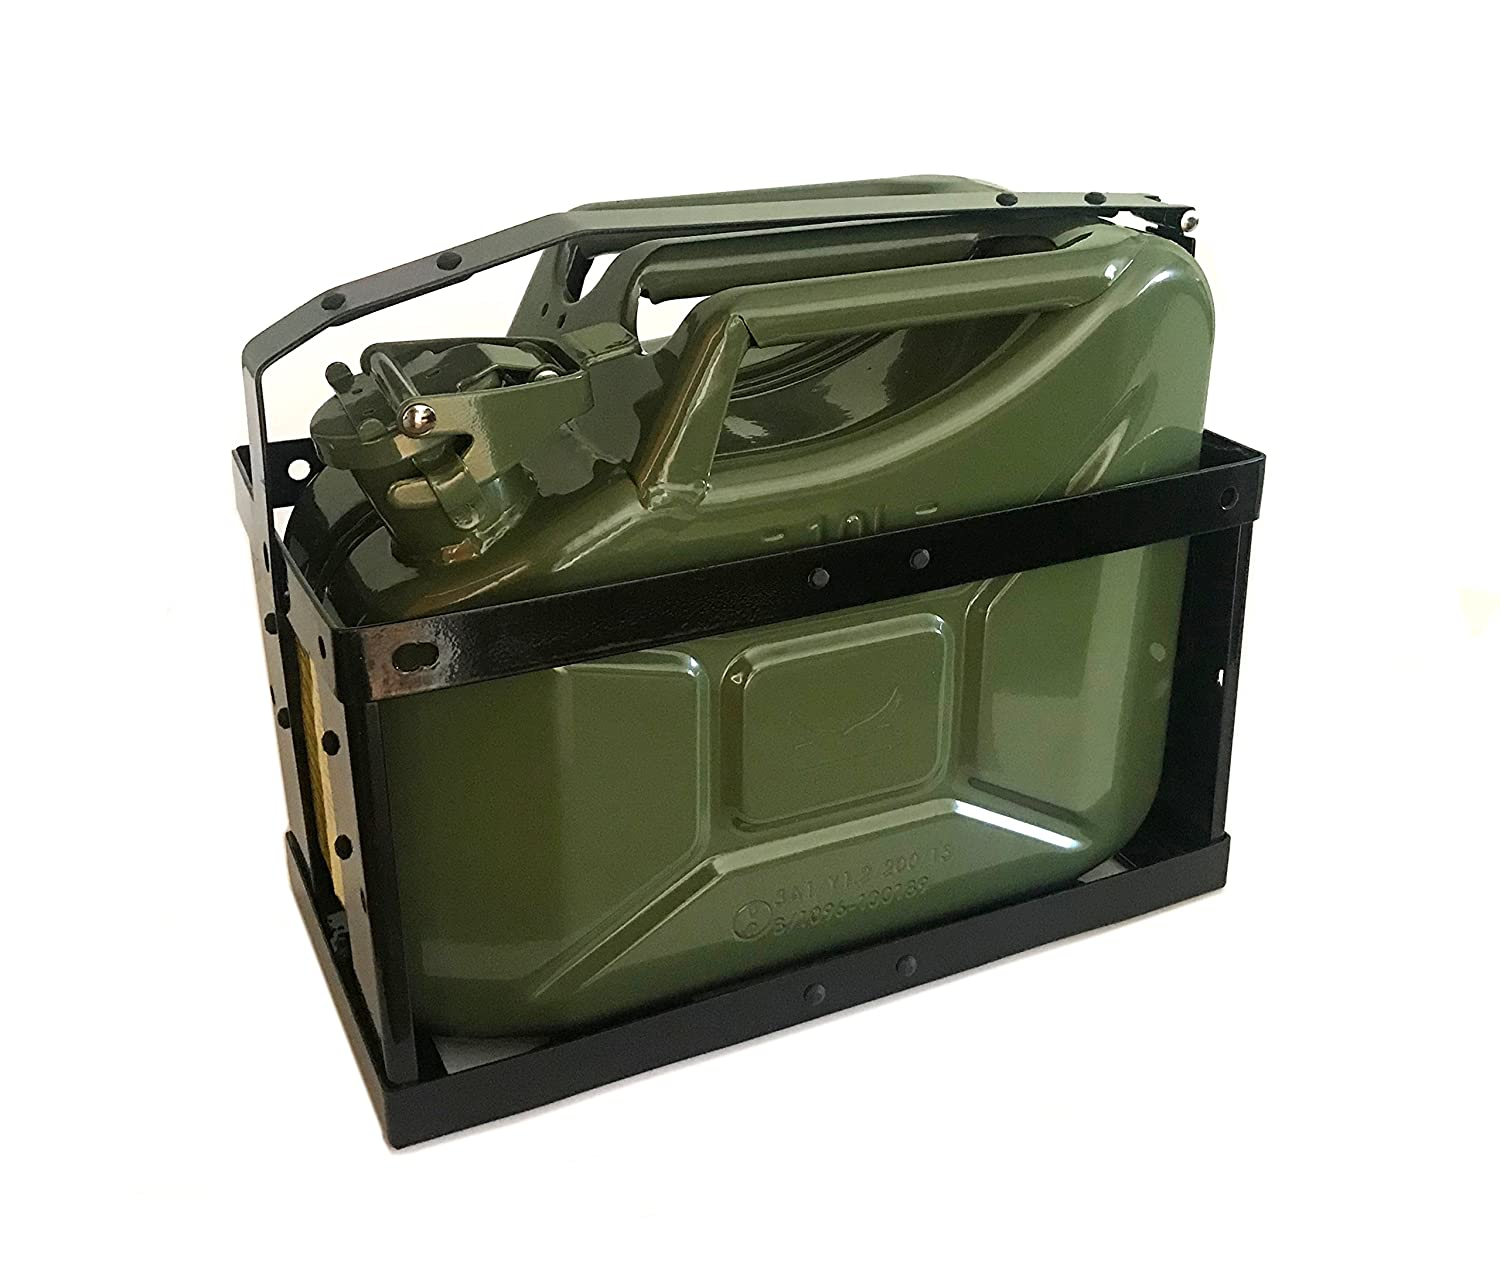 10 Litre Green Jerry Can & Holder for Fuel Petrol Diesel etc - Compact Design ASC